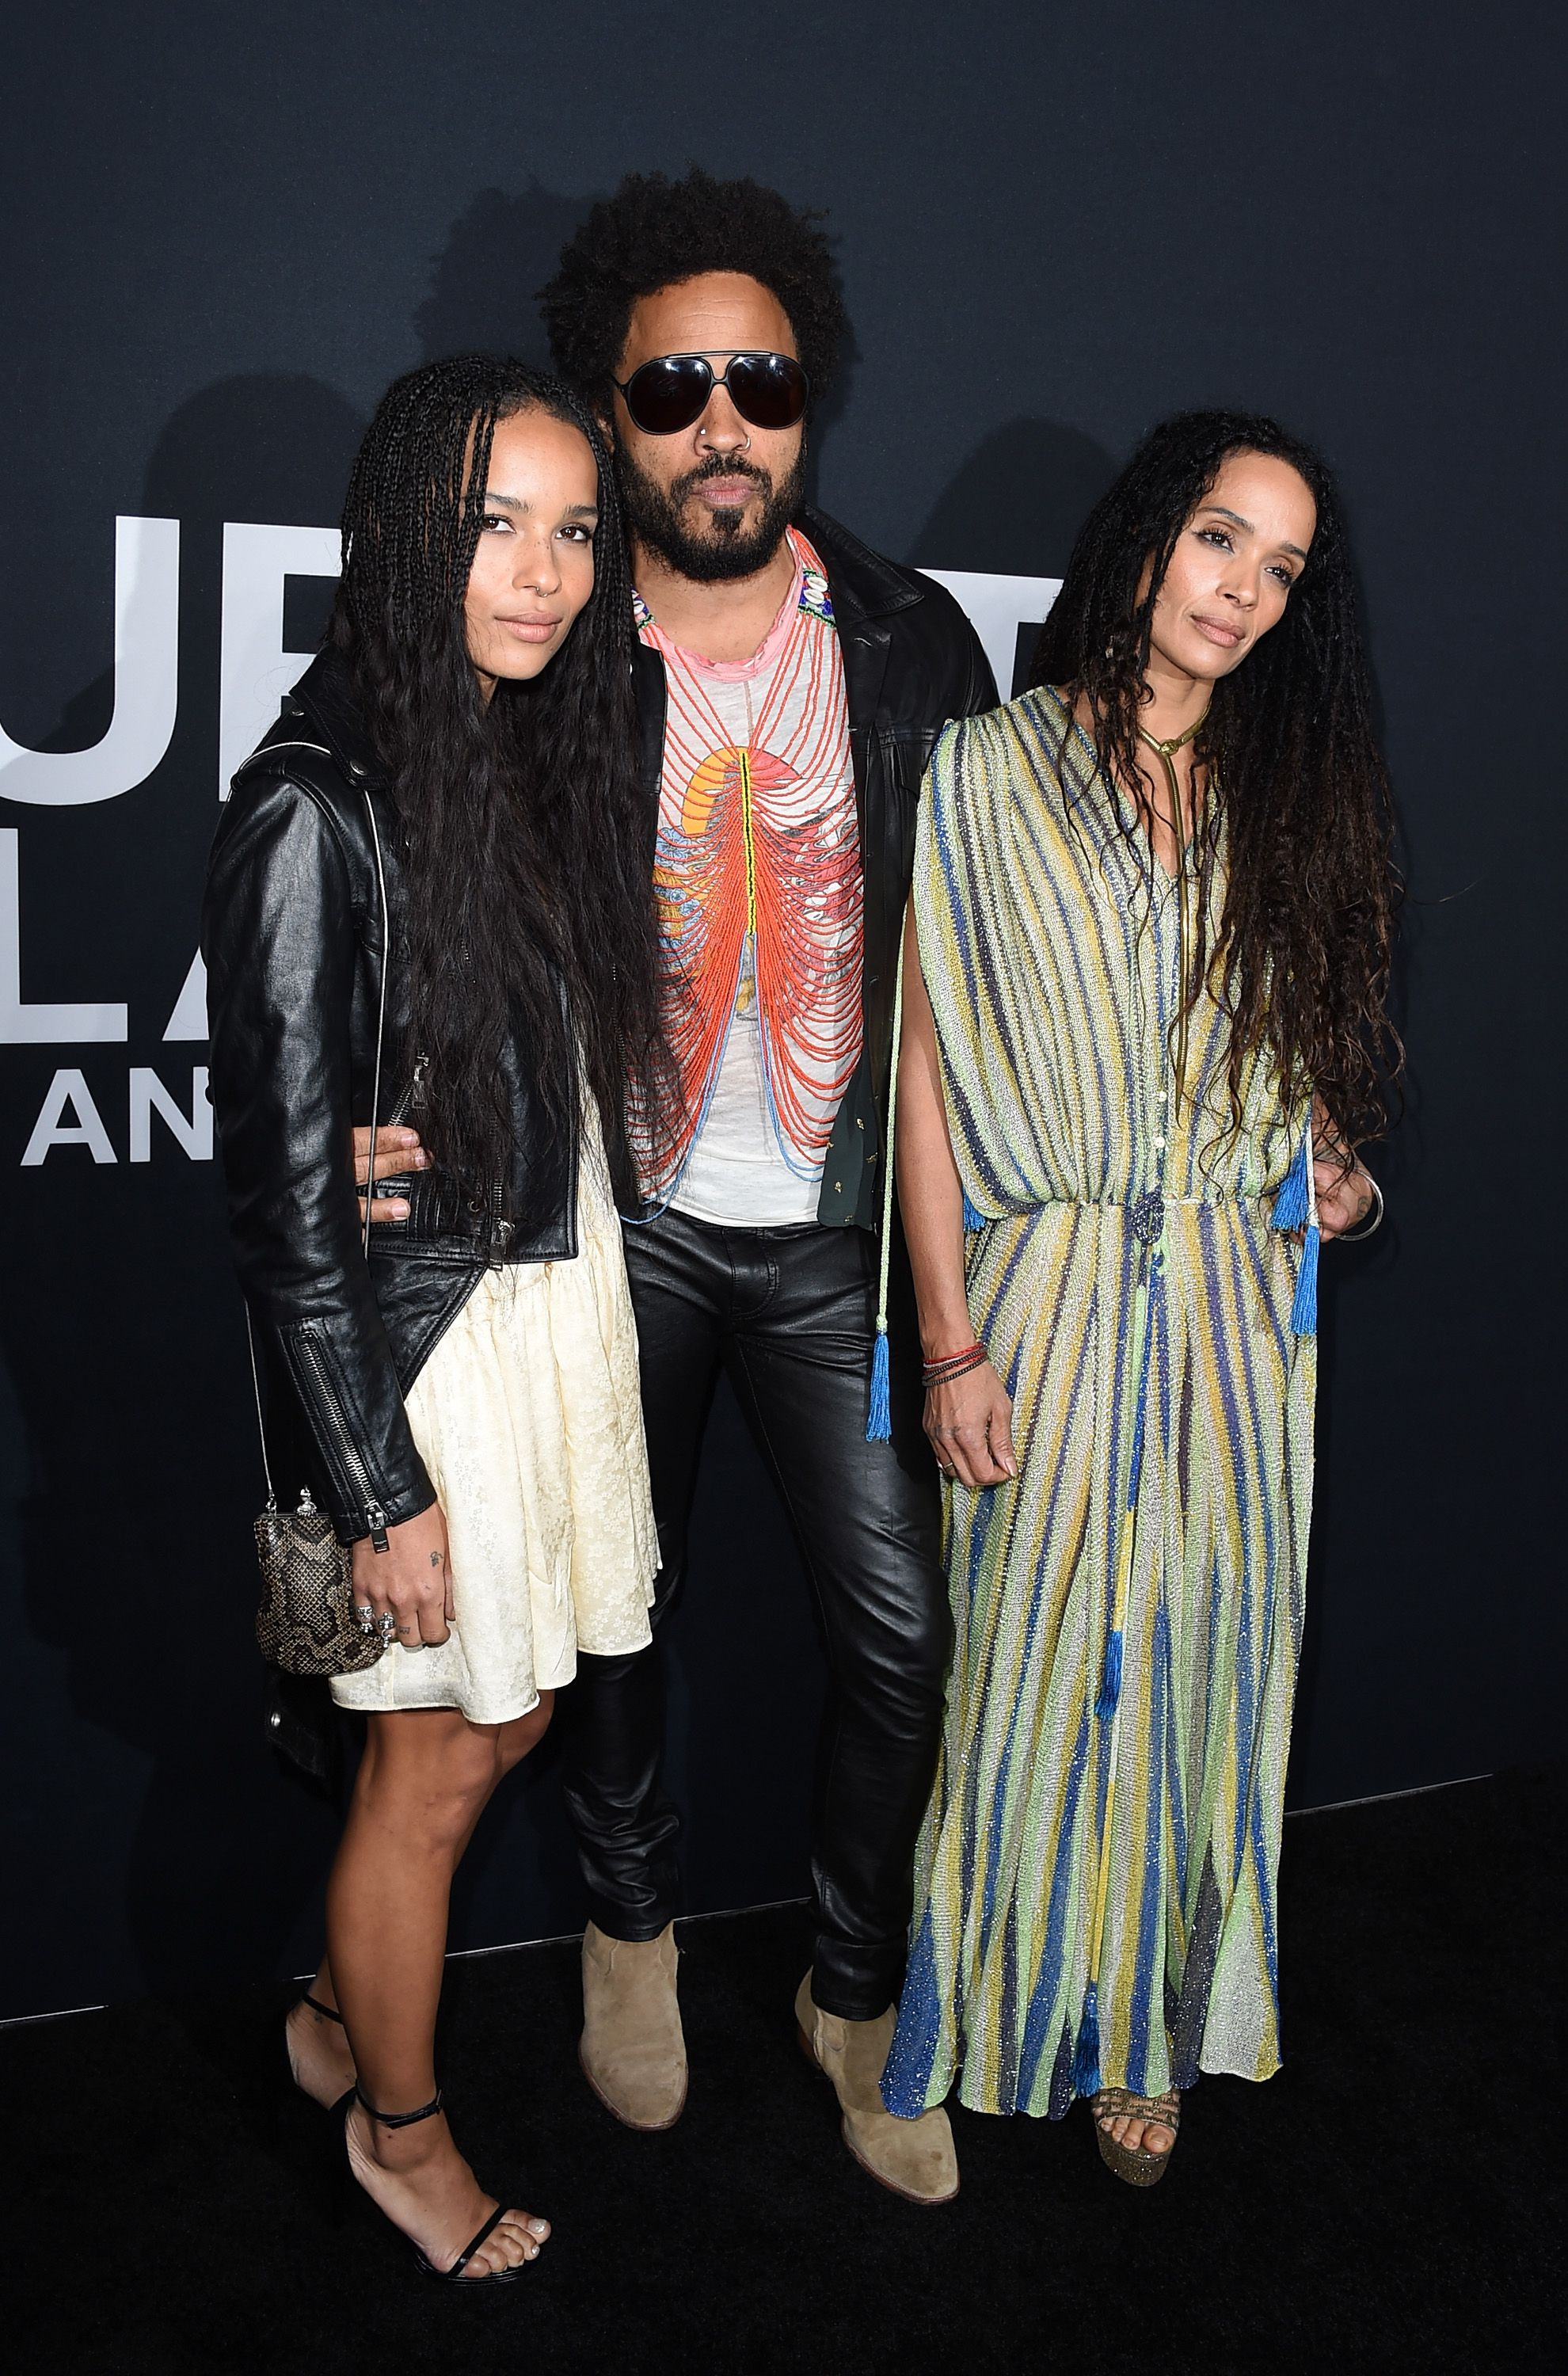 Musician Lenny Kravitz and actresses Zoe Kravitz and Lisa Bonet attend the Saint Laurent show / Getty Images